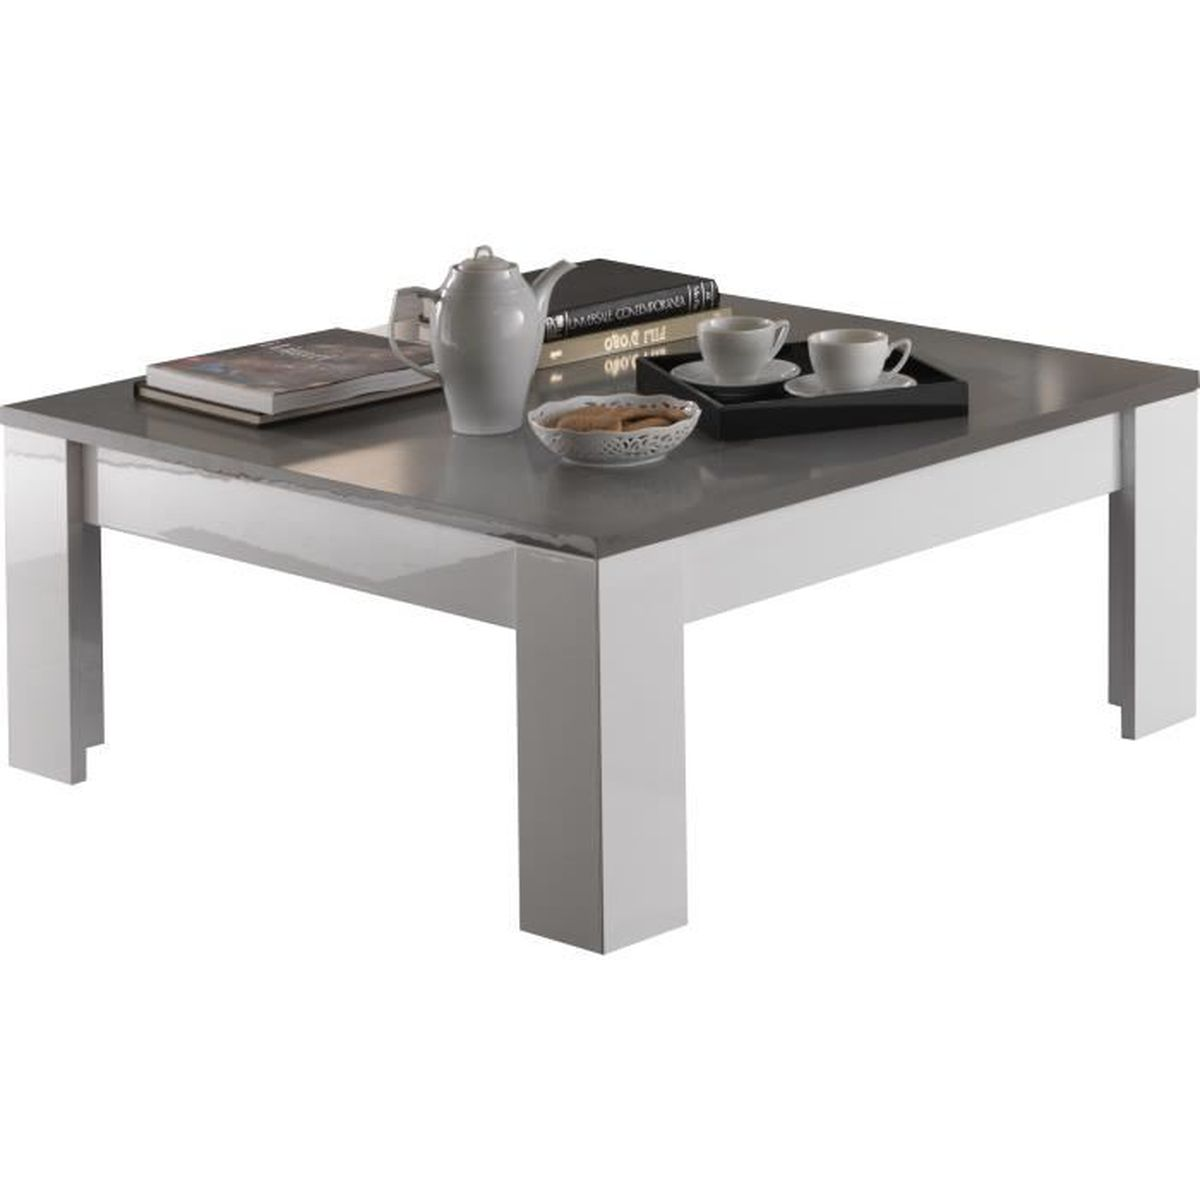 Table basse carr e coloris blanc et gris laqu brillant - Table basse carree blanc laque ...